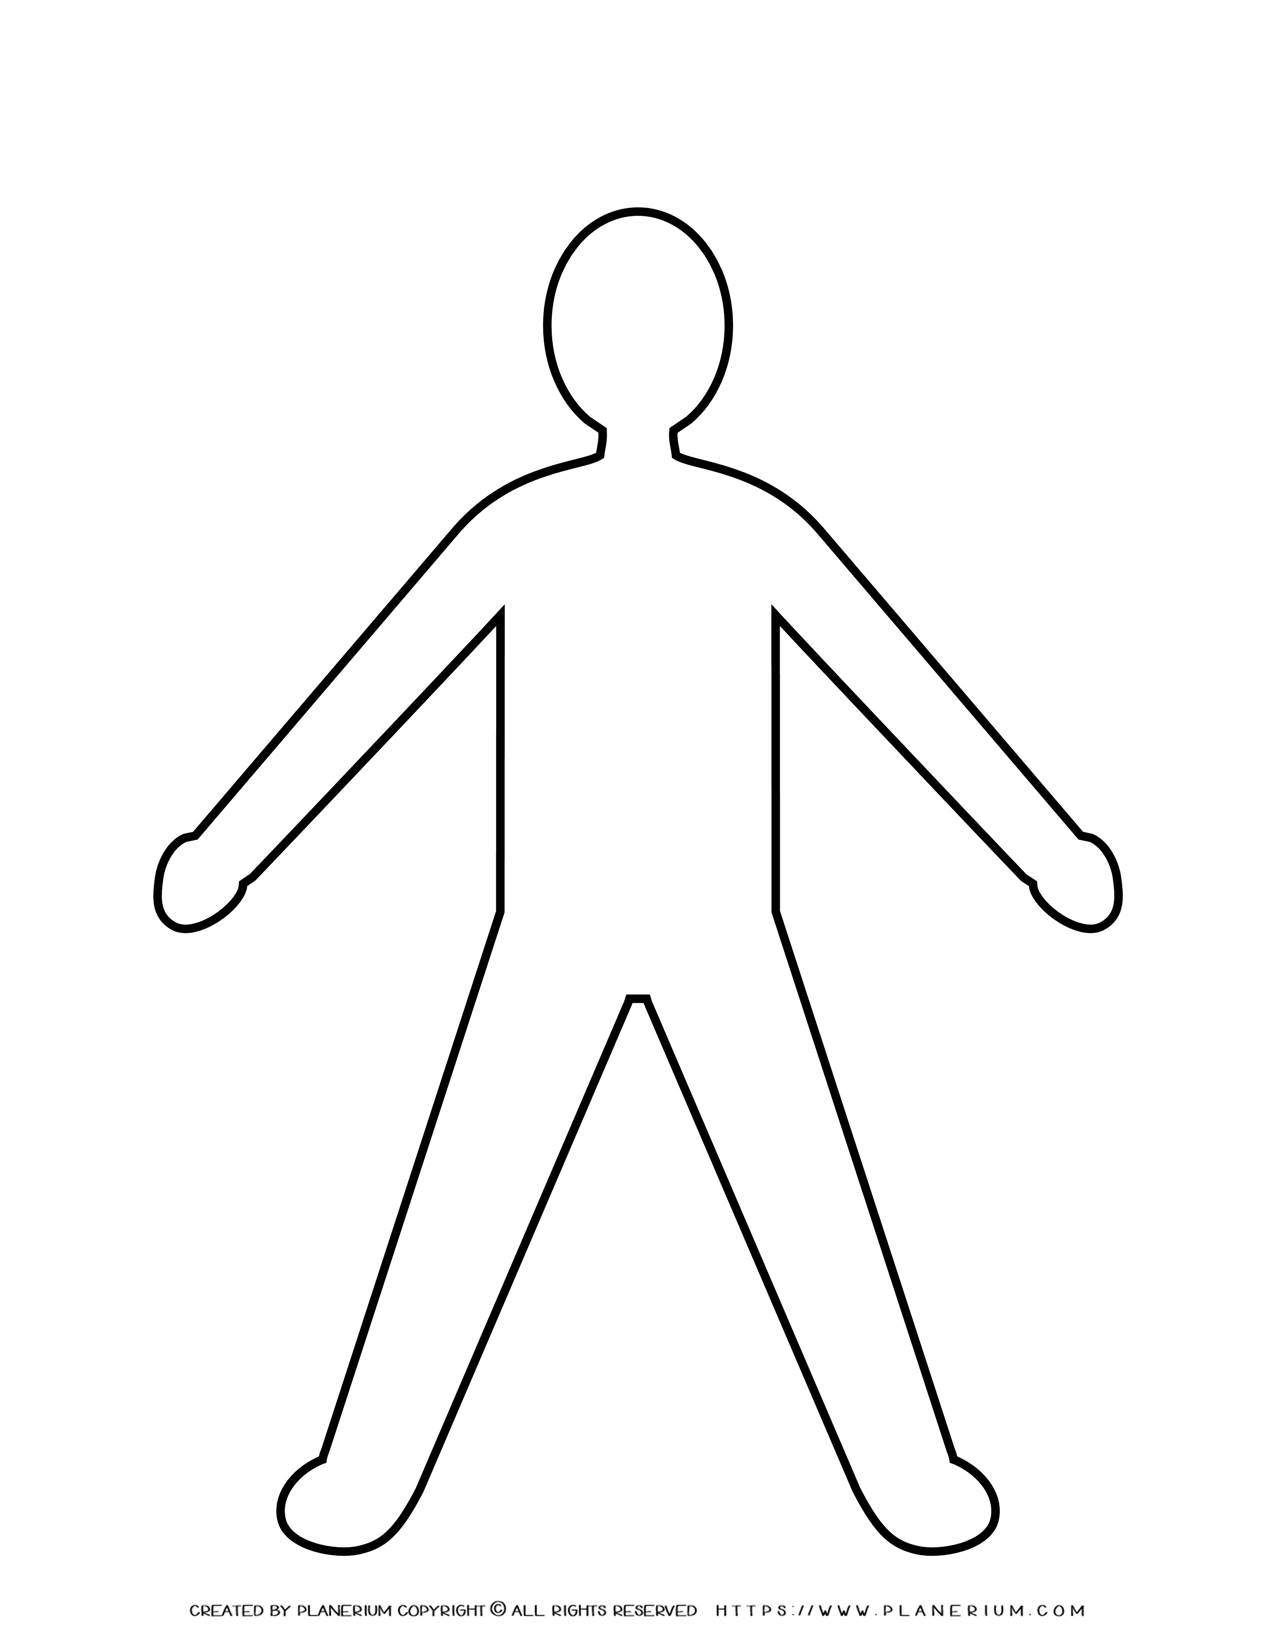 Man Spread Legs and Arms Silhouette | Planerium